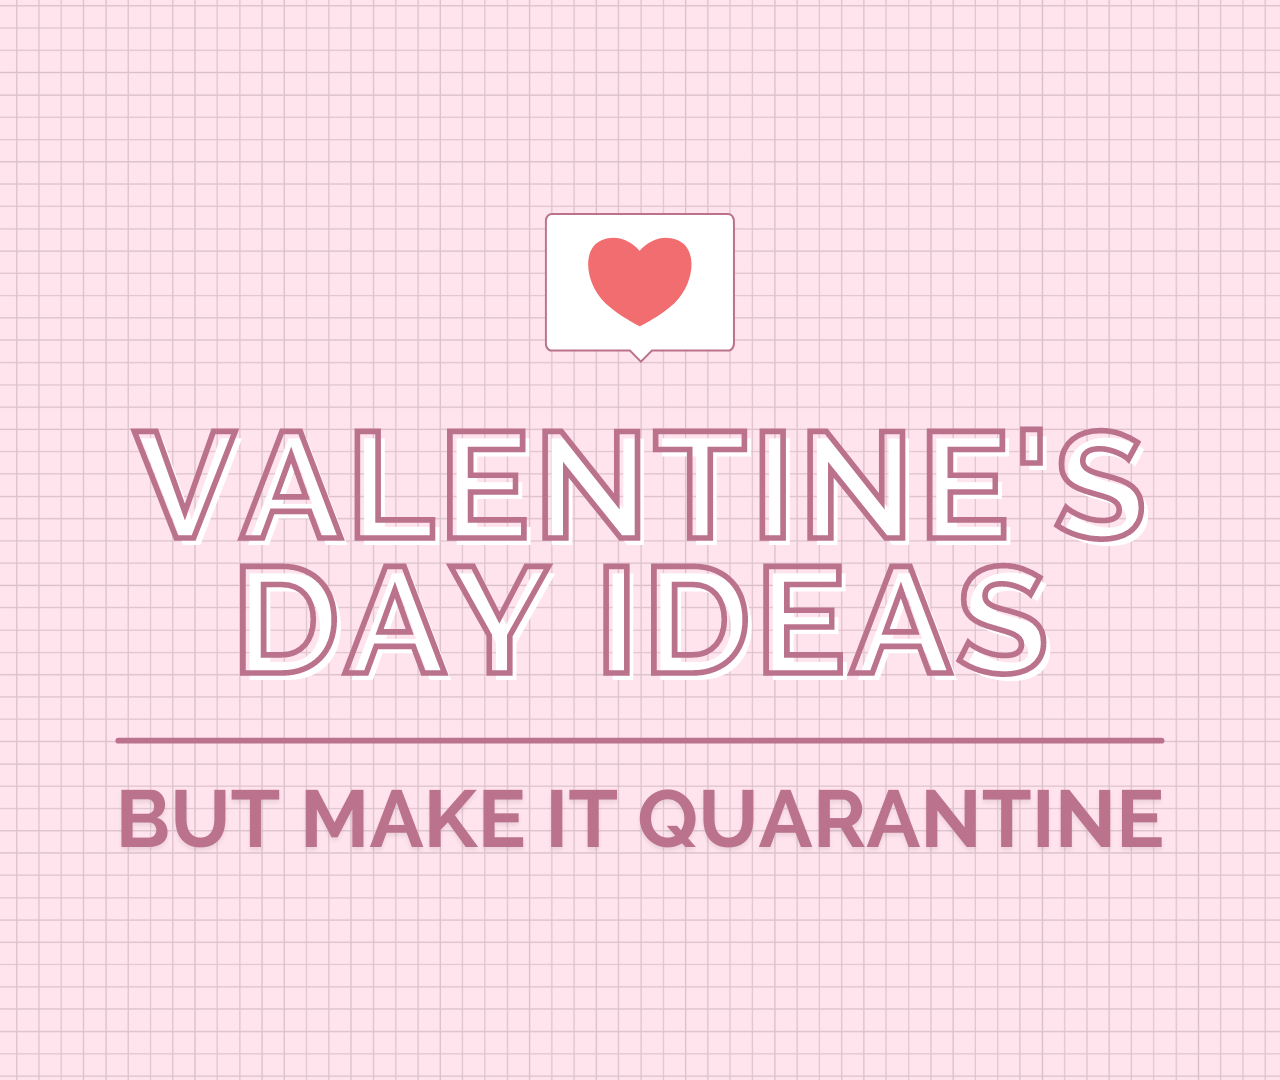 3 Ways to Celebrate Valentine's Day in Quarantine